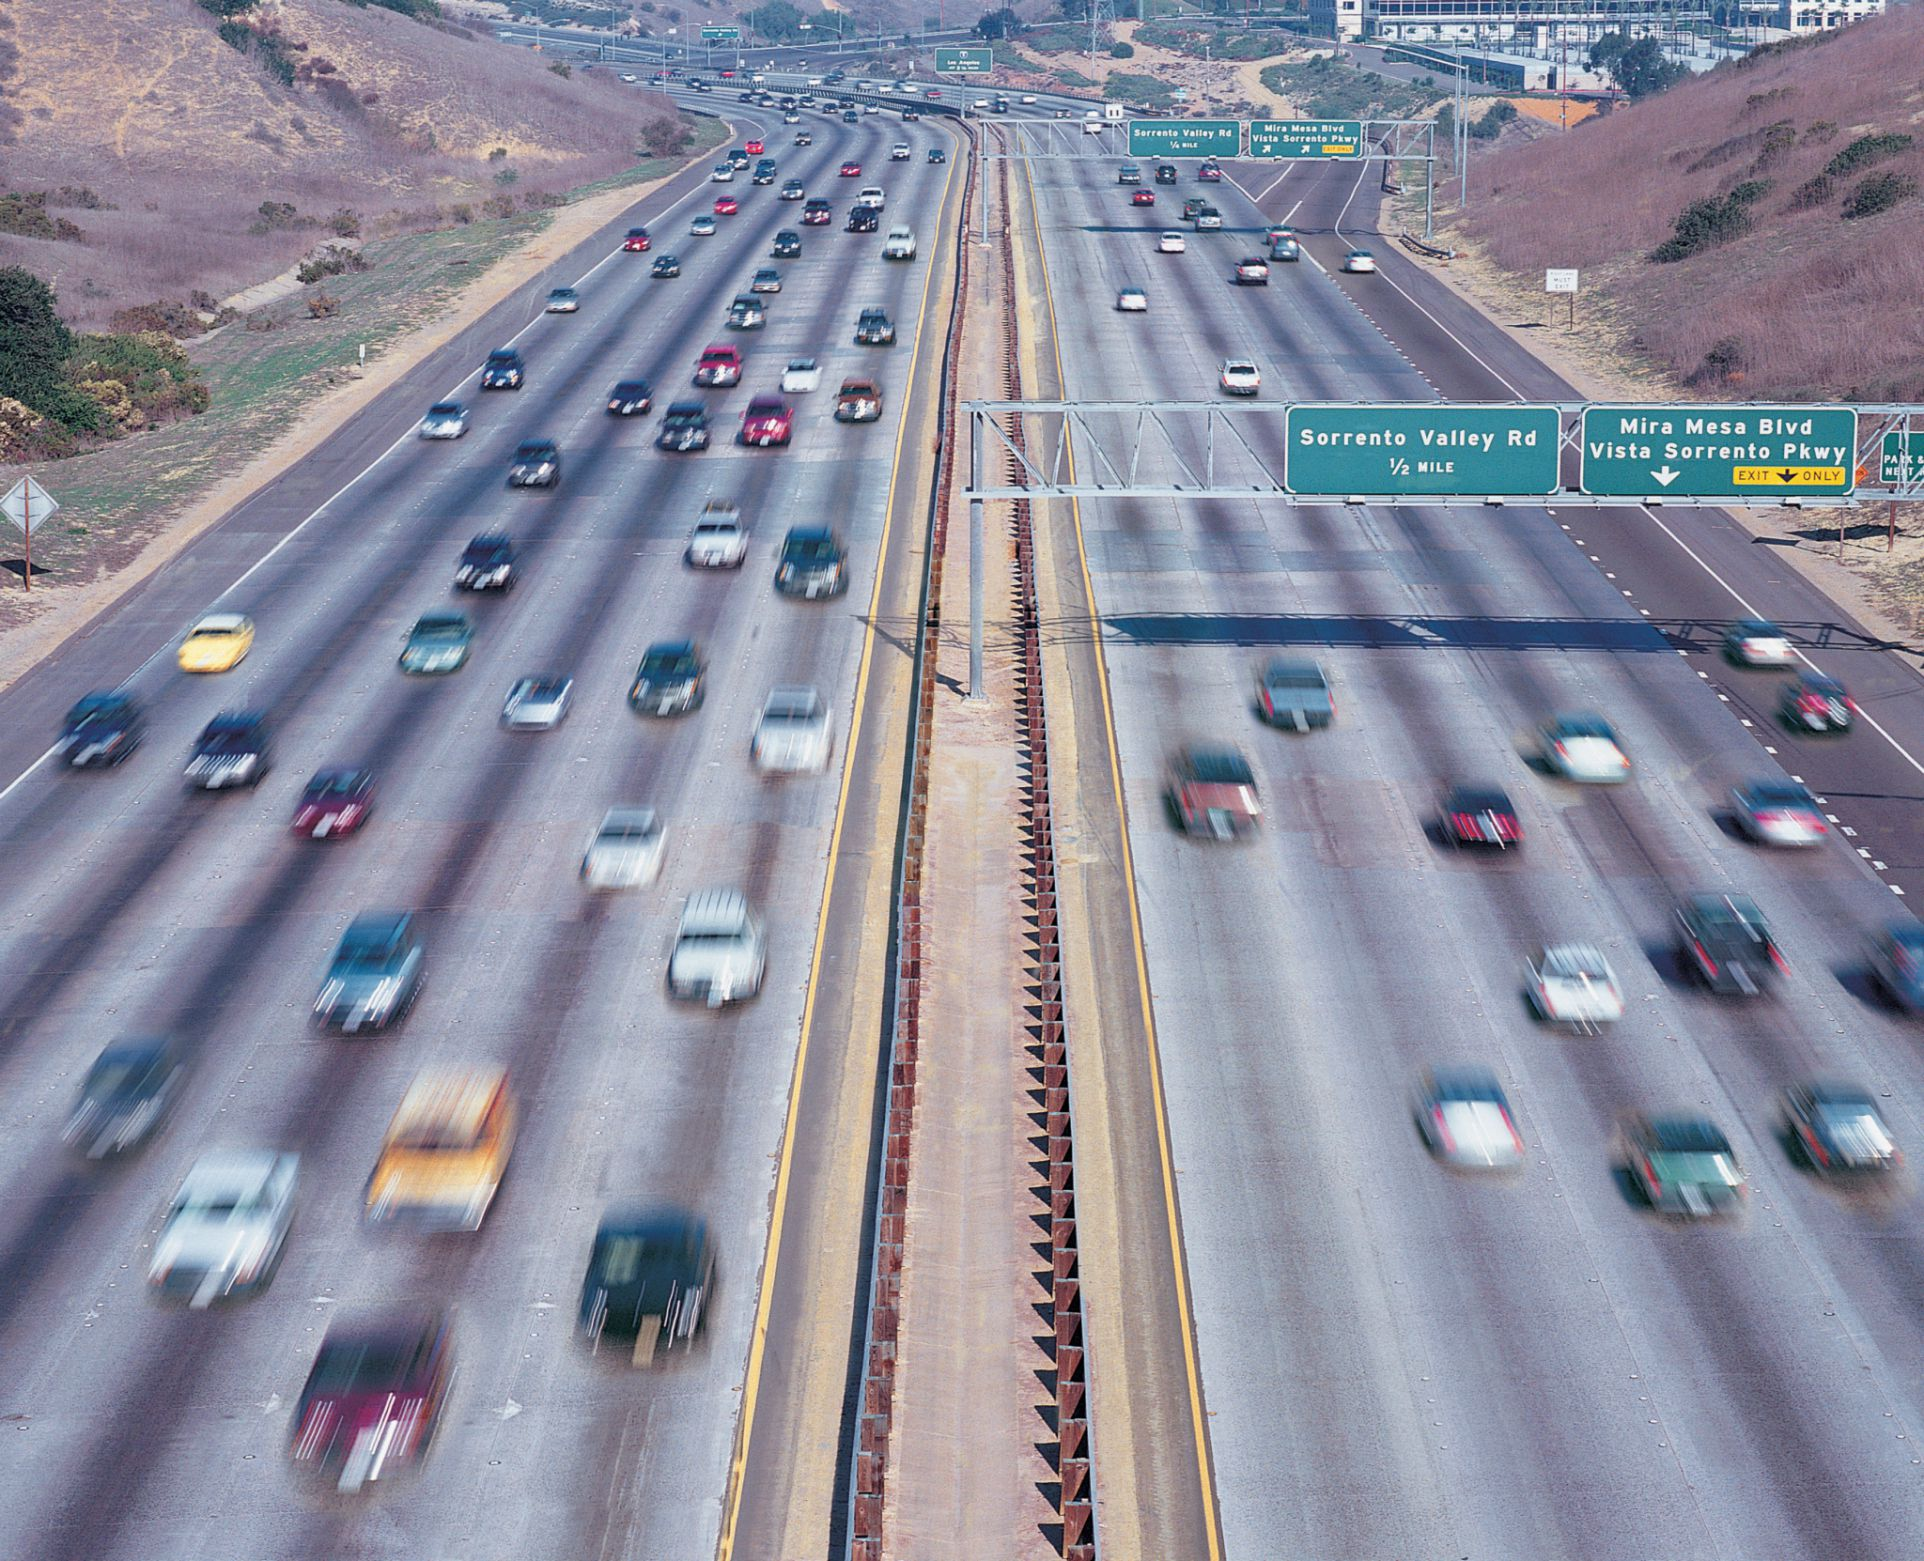 San Diego Freeways Your Guide to the Road